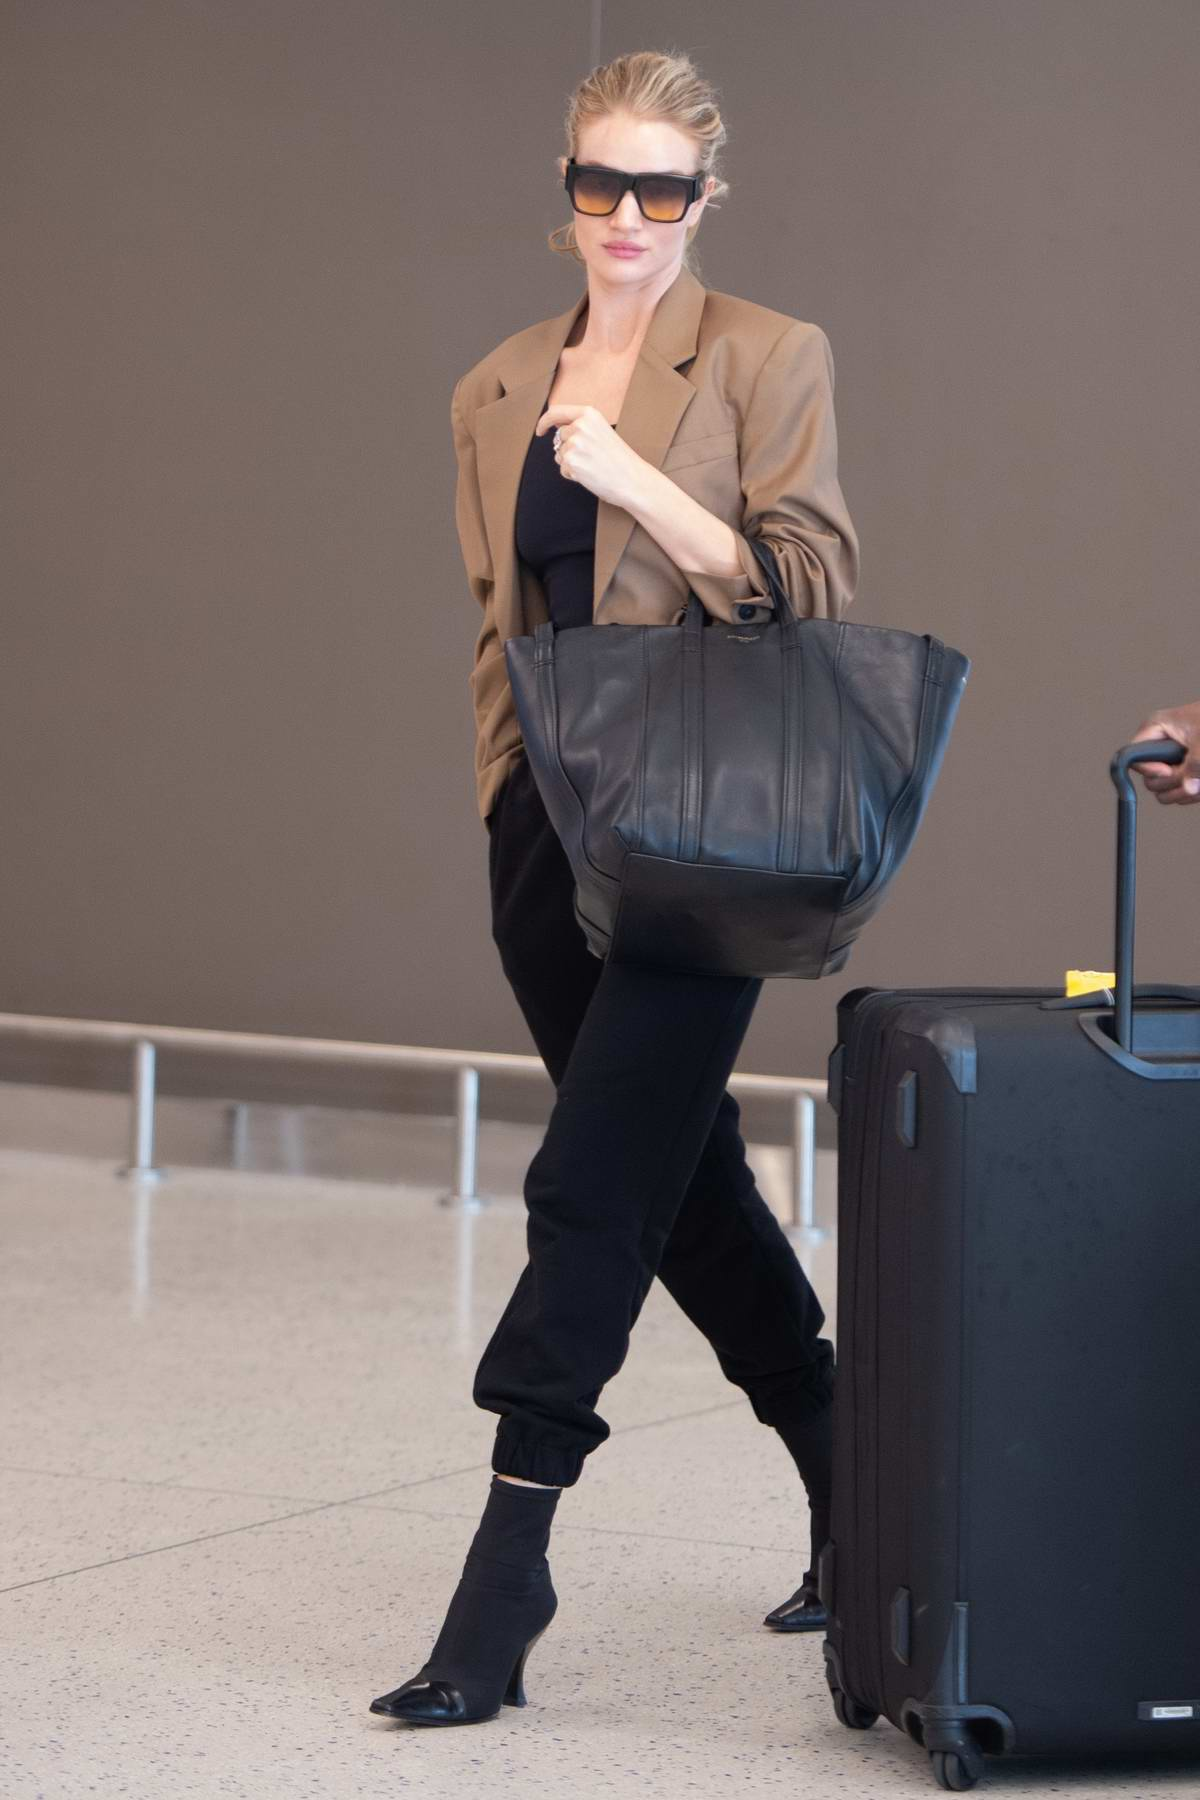 Rosie Huntington-Whiteley wore a brown blazer with black pants and heels as she arrives at JFK airport in New York City